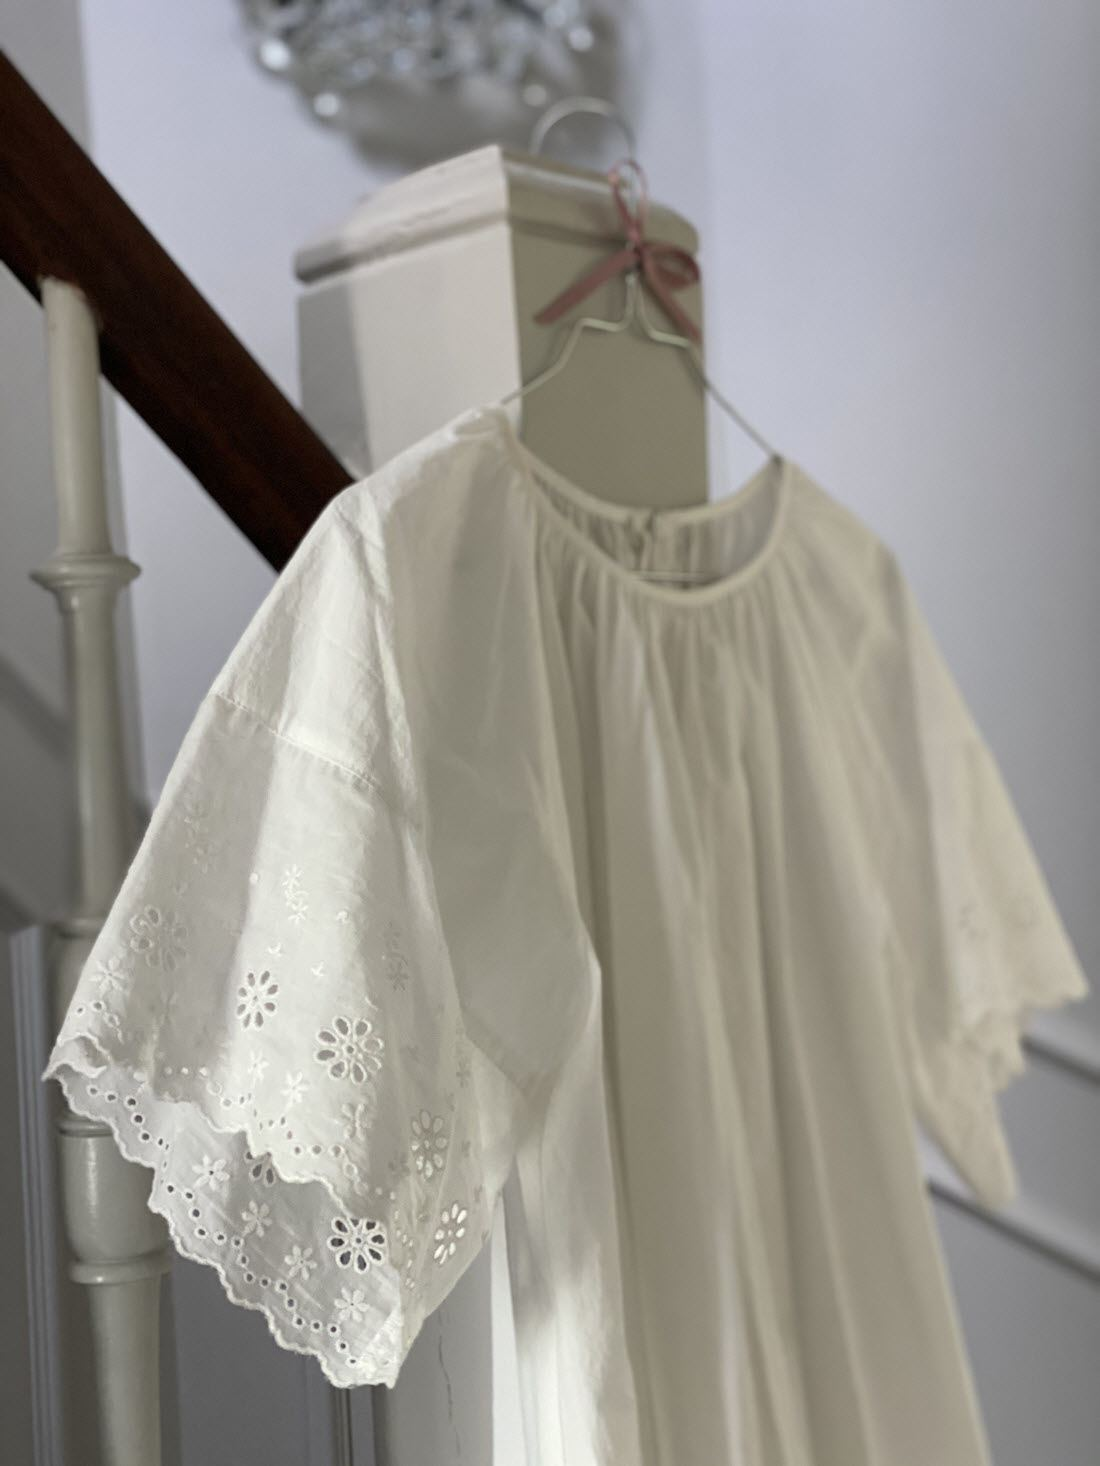 Fifi Bomuldskjole M. Broderie Anglaise - White